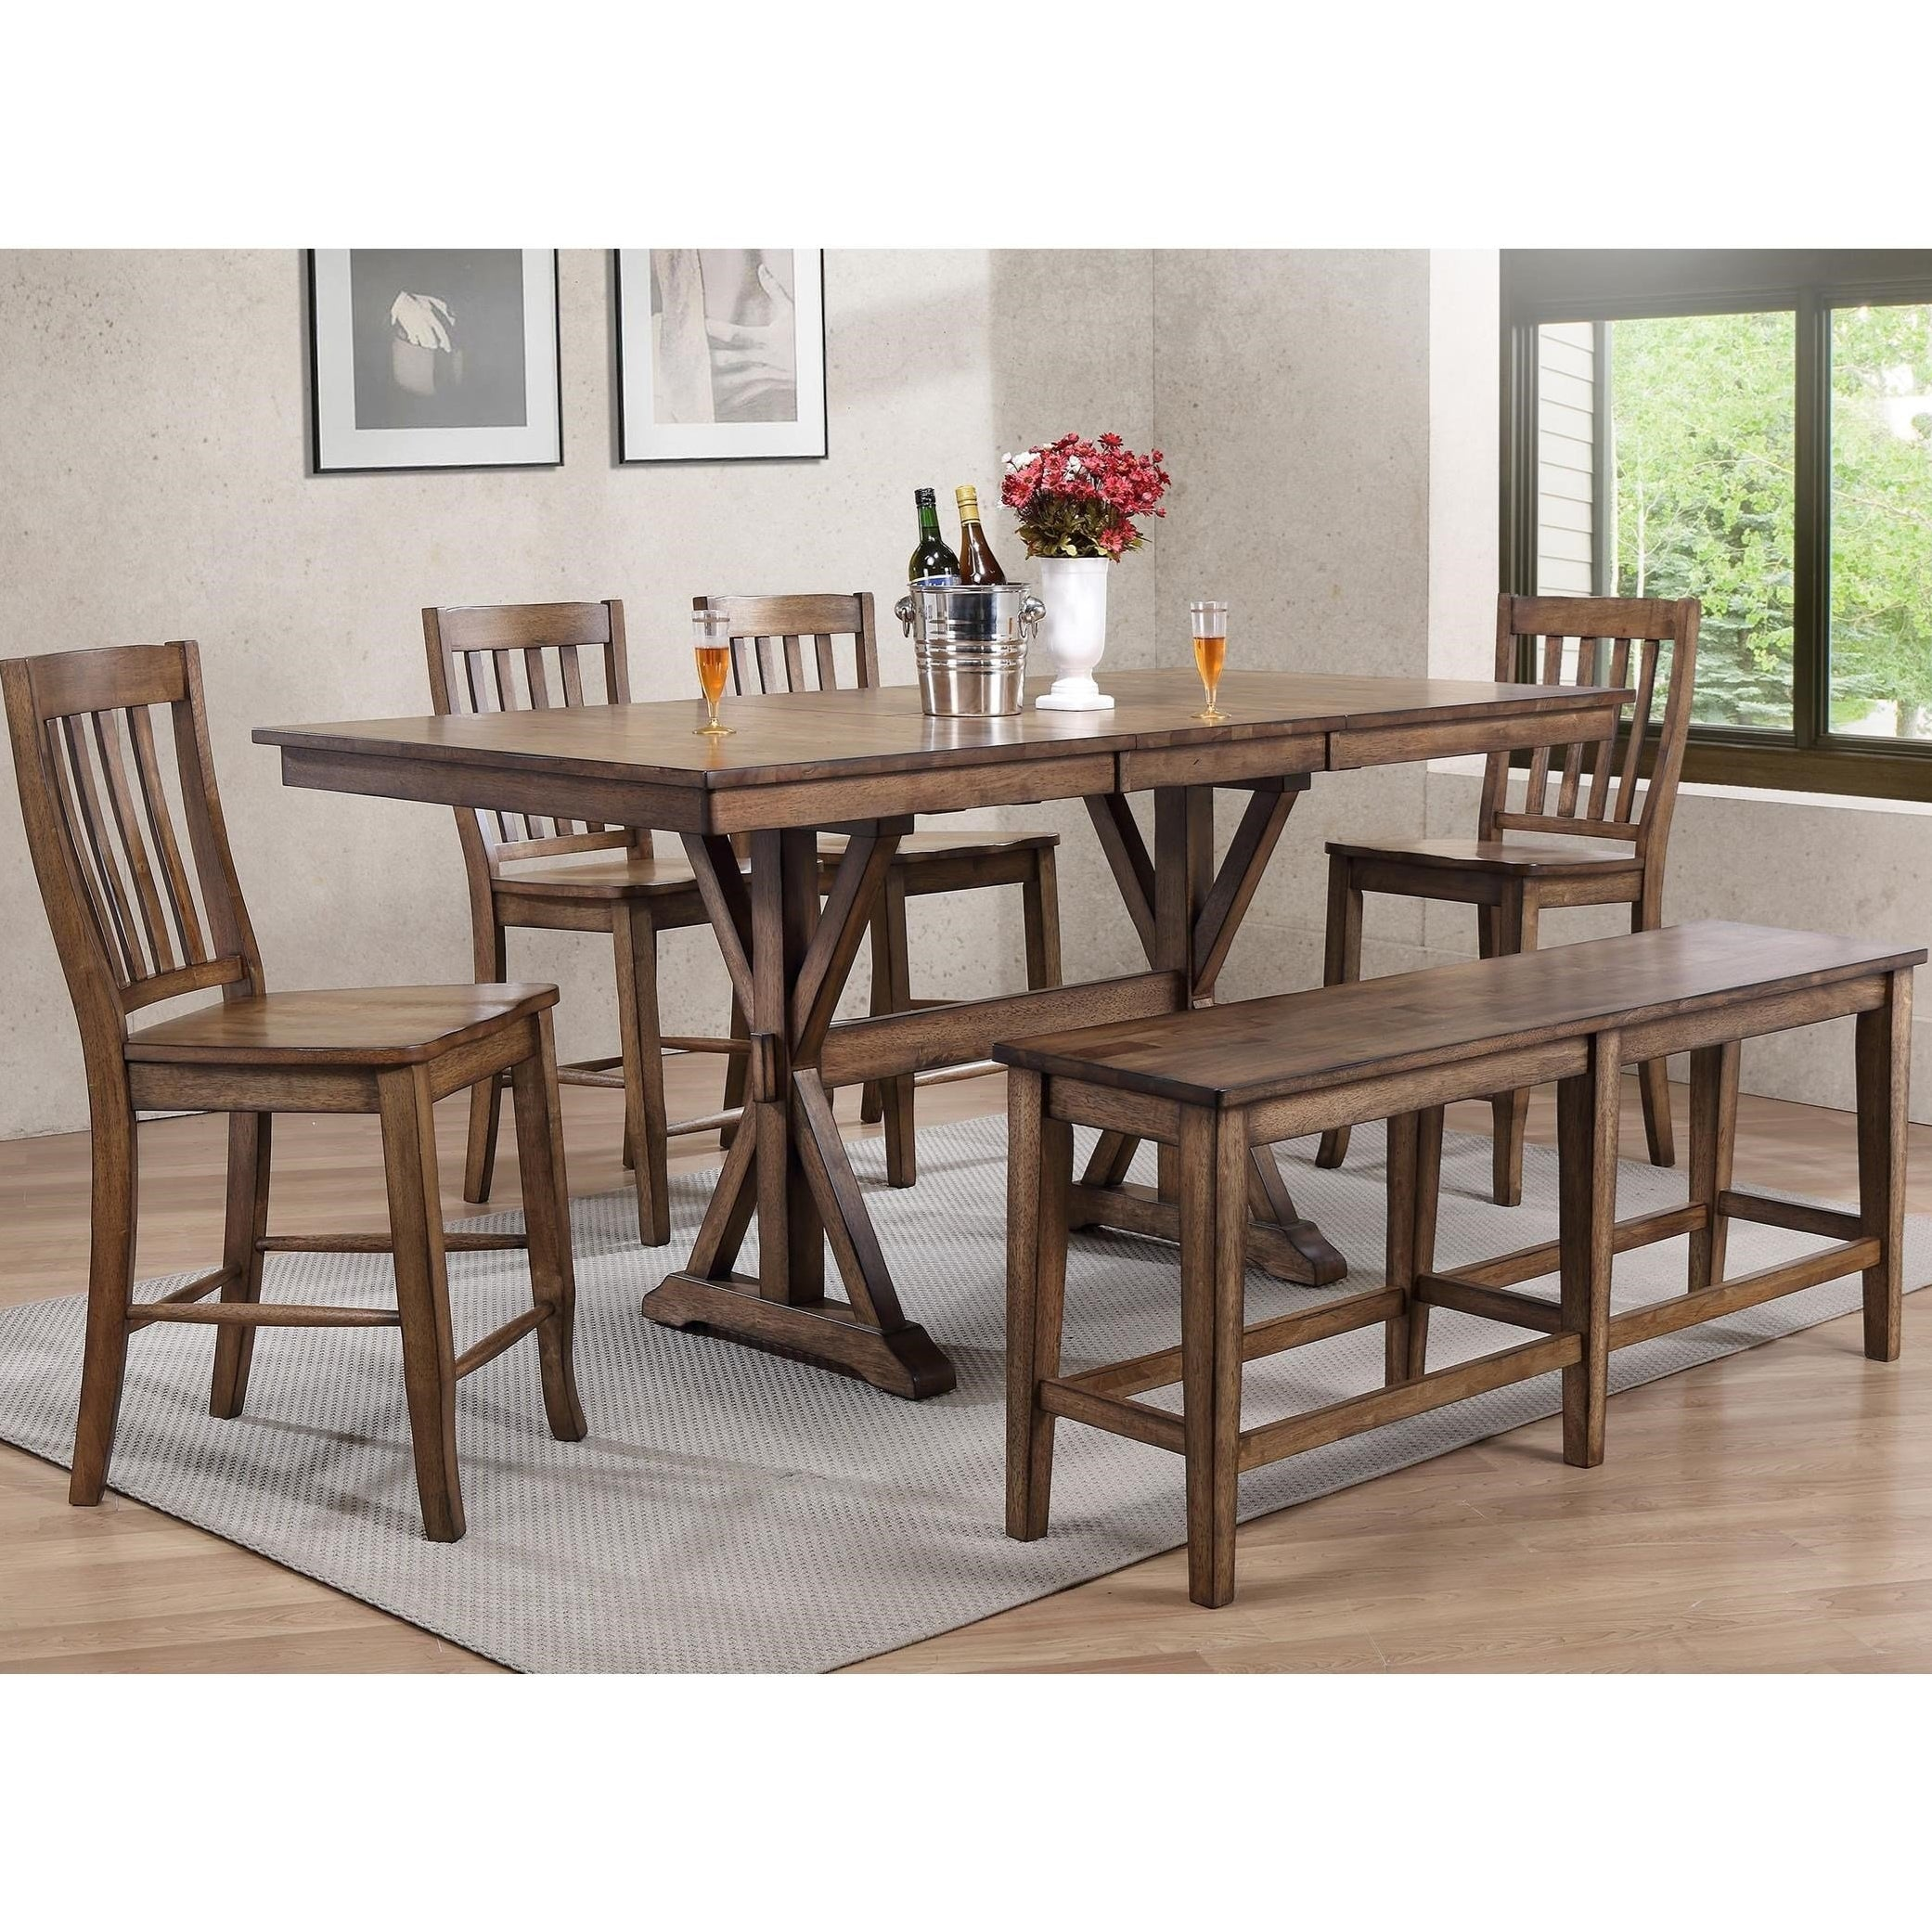 Oakhurst Counter Height Trestle Dining Set - Lifestyle Furniture